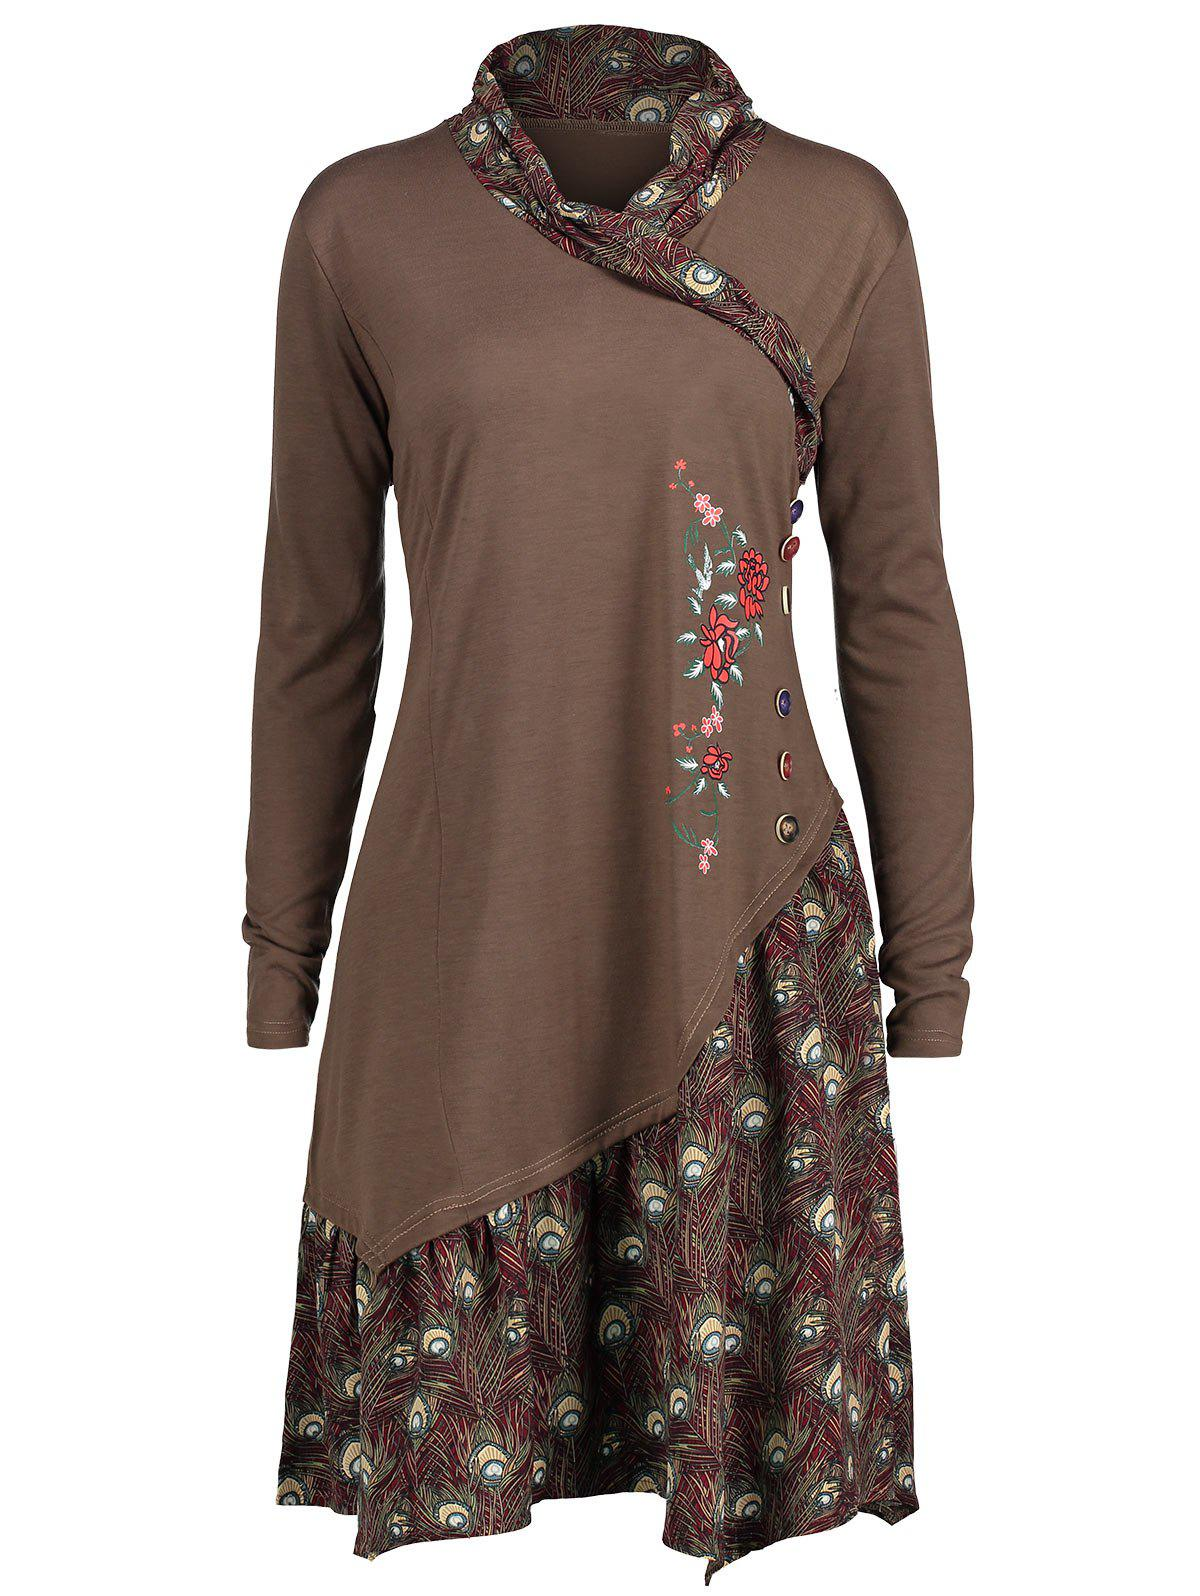 Plus Size Long Sleeve Asymmetric Floral Panel Tunic TopWOMEN<br><br>Size: 2XL; Color: BROWN; Material: Cotton Blends,Polyester; Shirt Length: Long; Sleeve Length: Full; Collar: Shawl Collar; Style: Fashion; Season: Fall,Winter; Embellishment: Button,Ruffles; Pattern Type: Floral; Weight: 0.3300kg; Package Contents: 1 x Top;